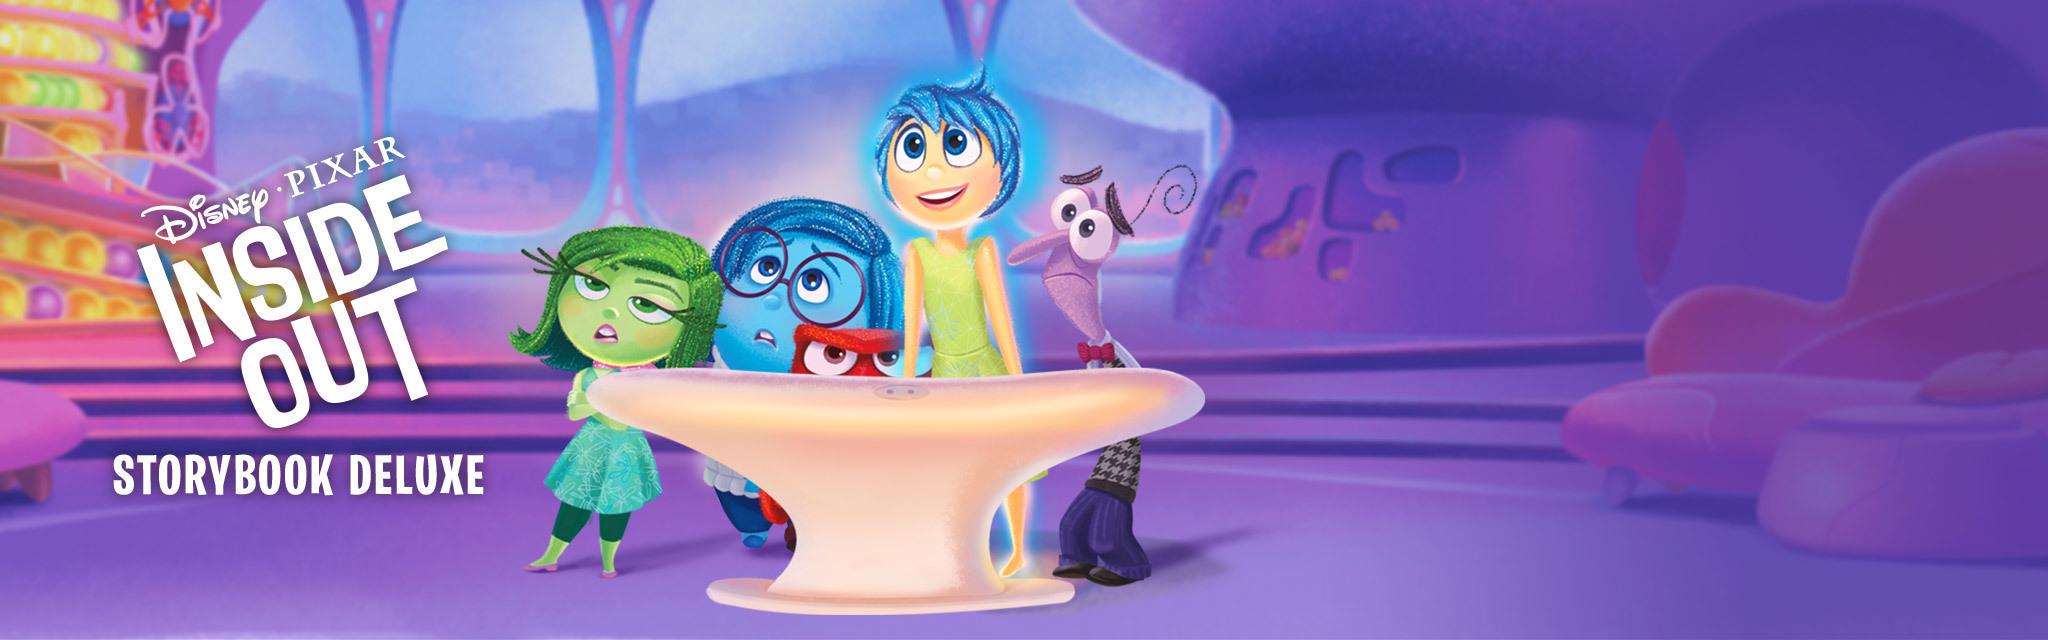 Inside Out: Storybook Deluxe App - Portal Hero - ID